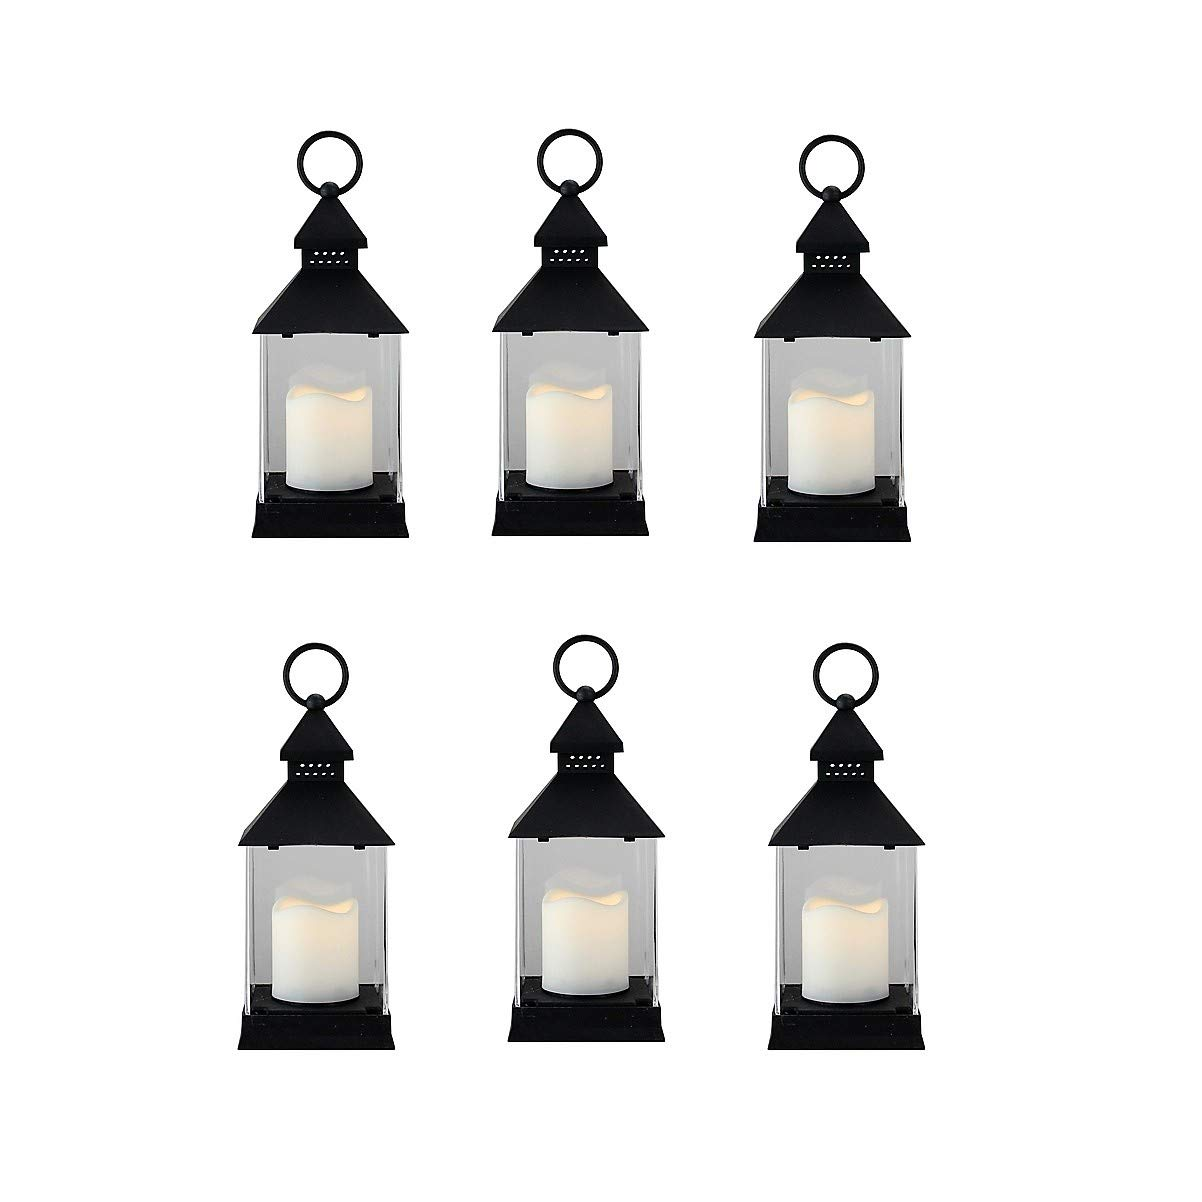 Just In Time for Spring {6 Pc Set} 10'' Decorative Lanterns With Flameless LED Lighted Candle - 5 Hr Timer Modern Look Indoor Outdoor for Home, Garden, Patio, Party Lights, Weddings (Black)